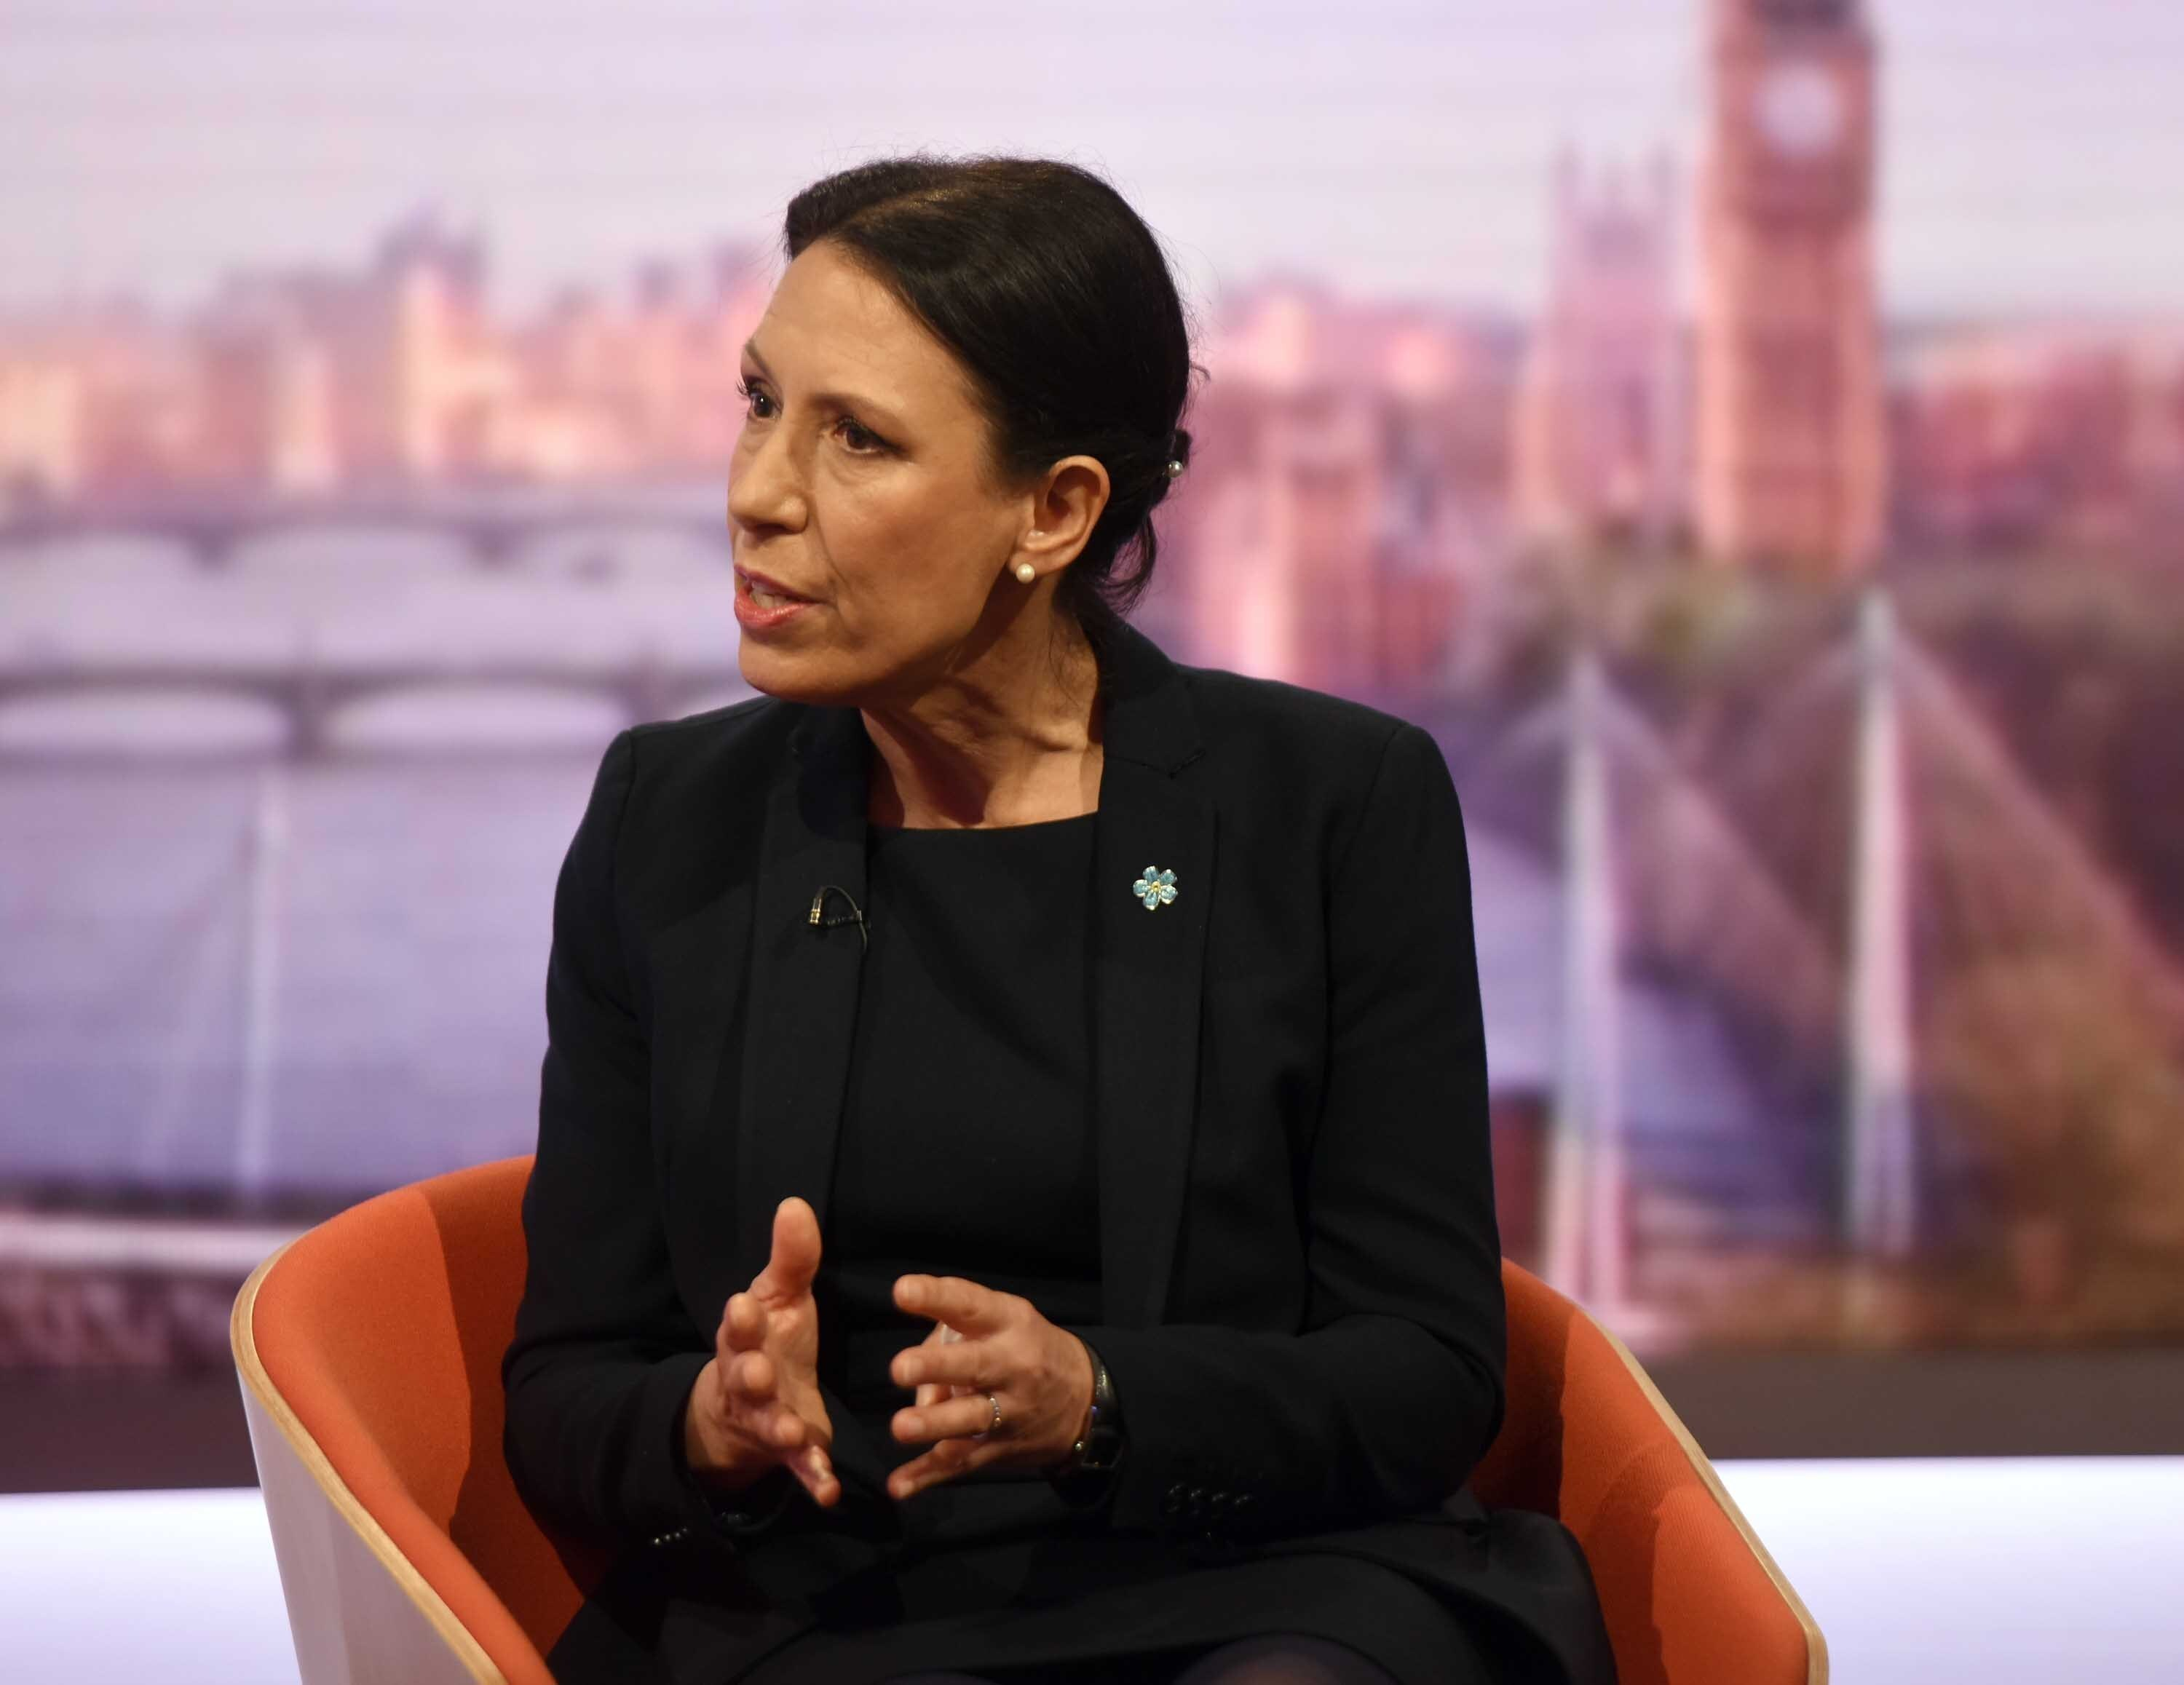 Shadow work and pensions secretary Debbie Abrahams